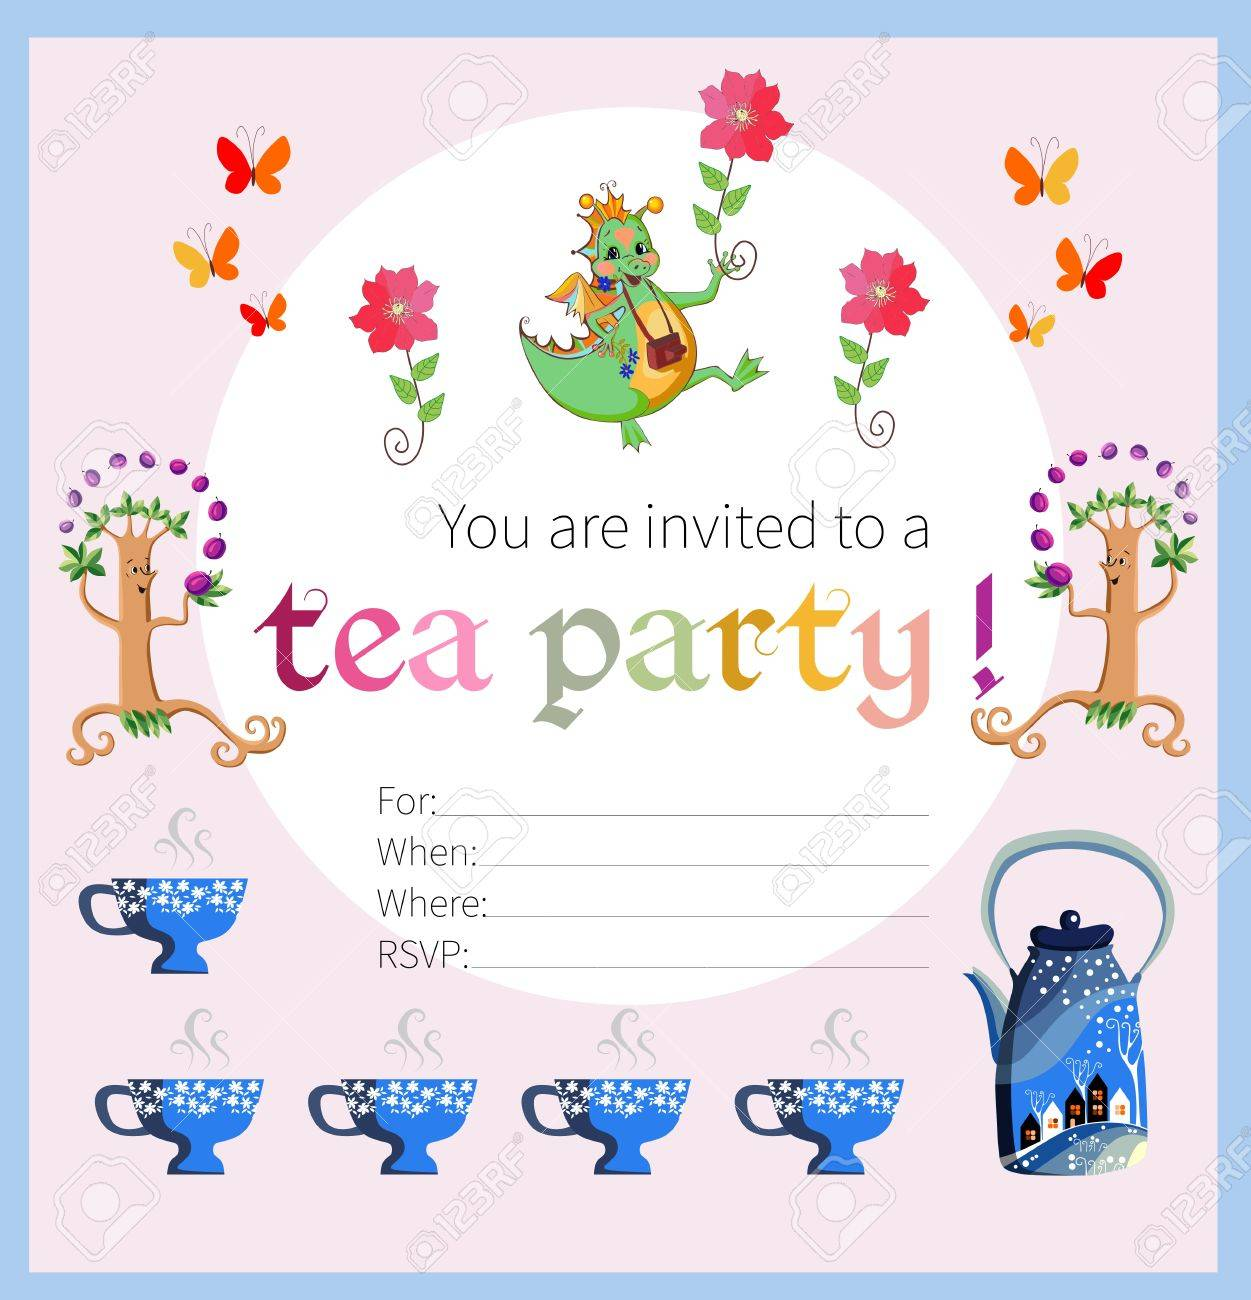 Tea Party Invitation For Kids. Card With Happy Dragon, Flowers ...